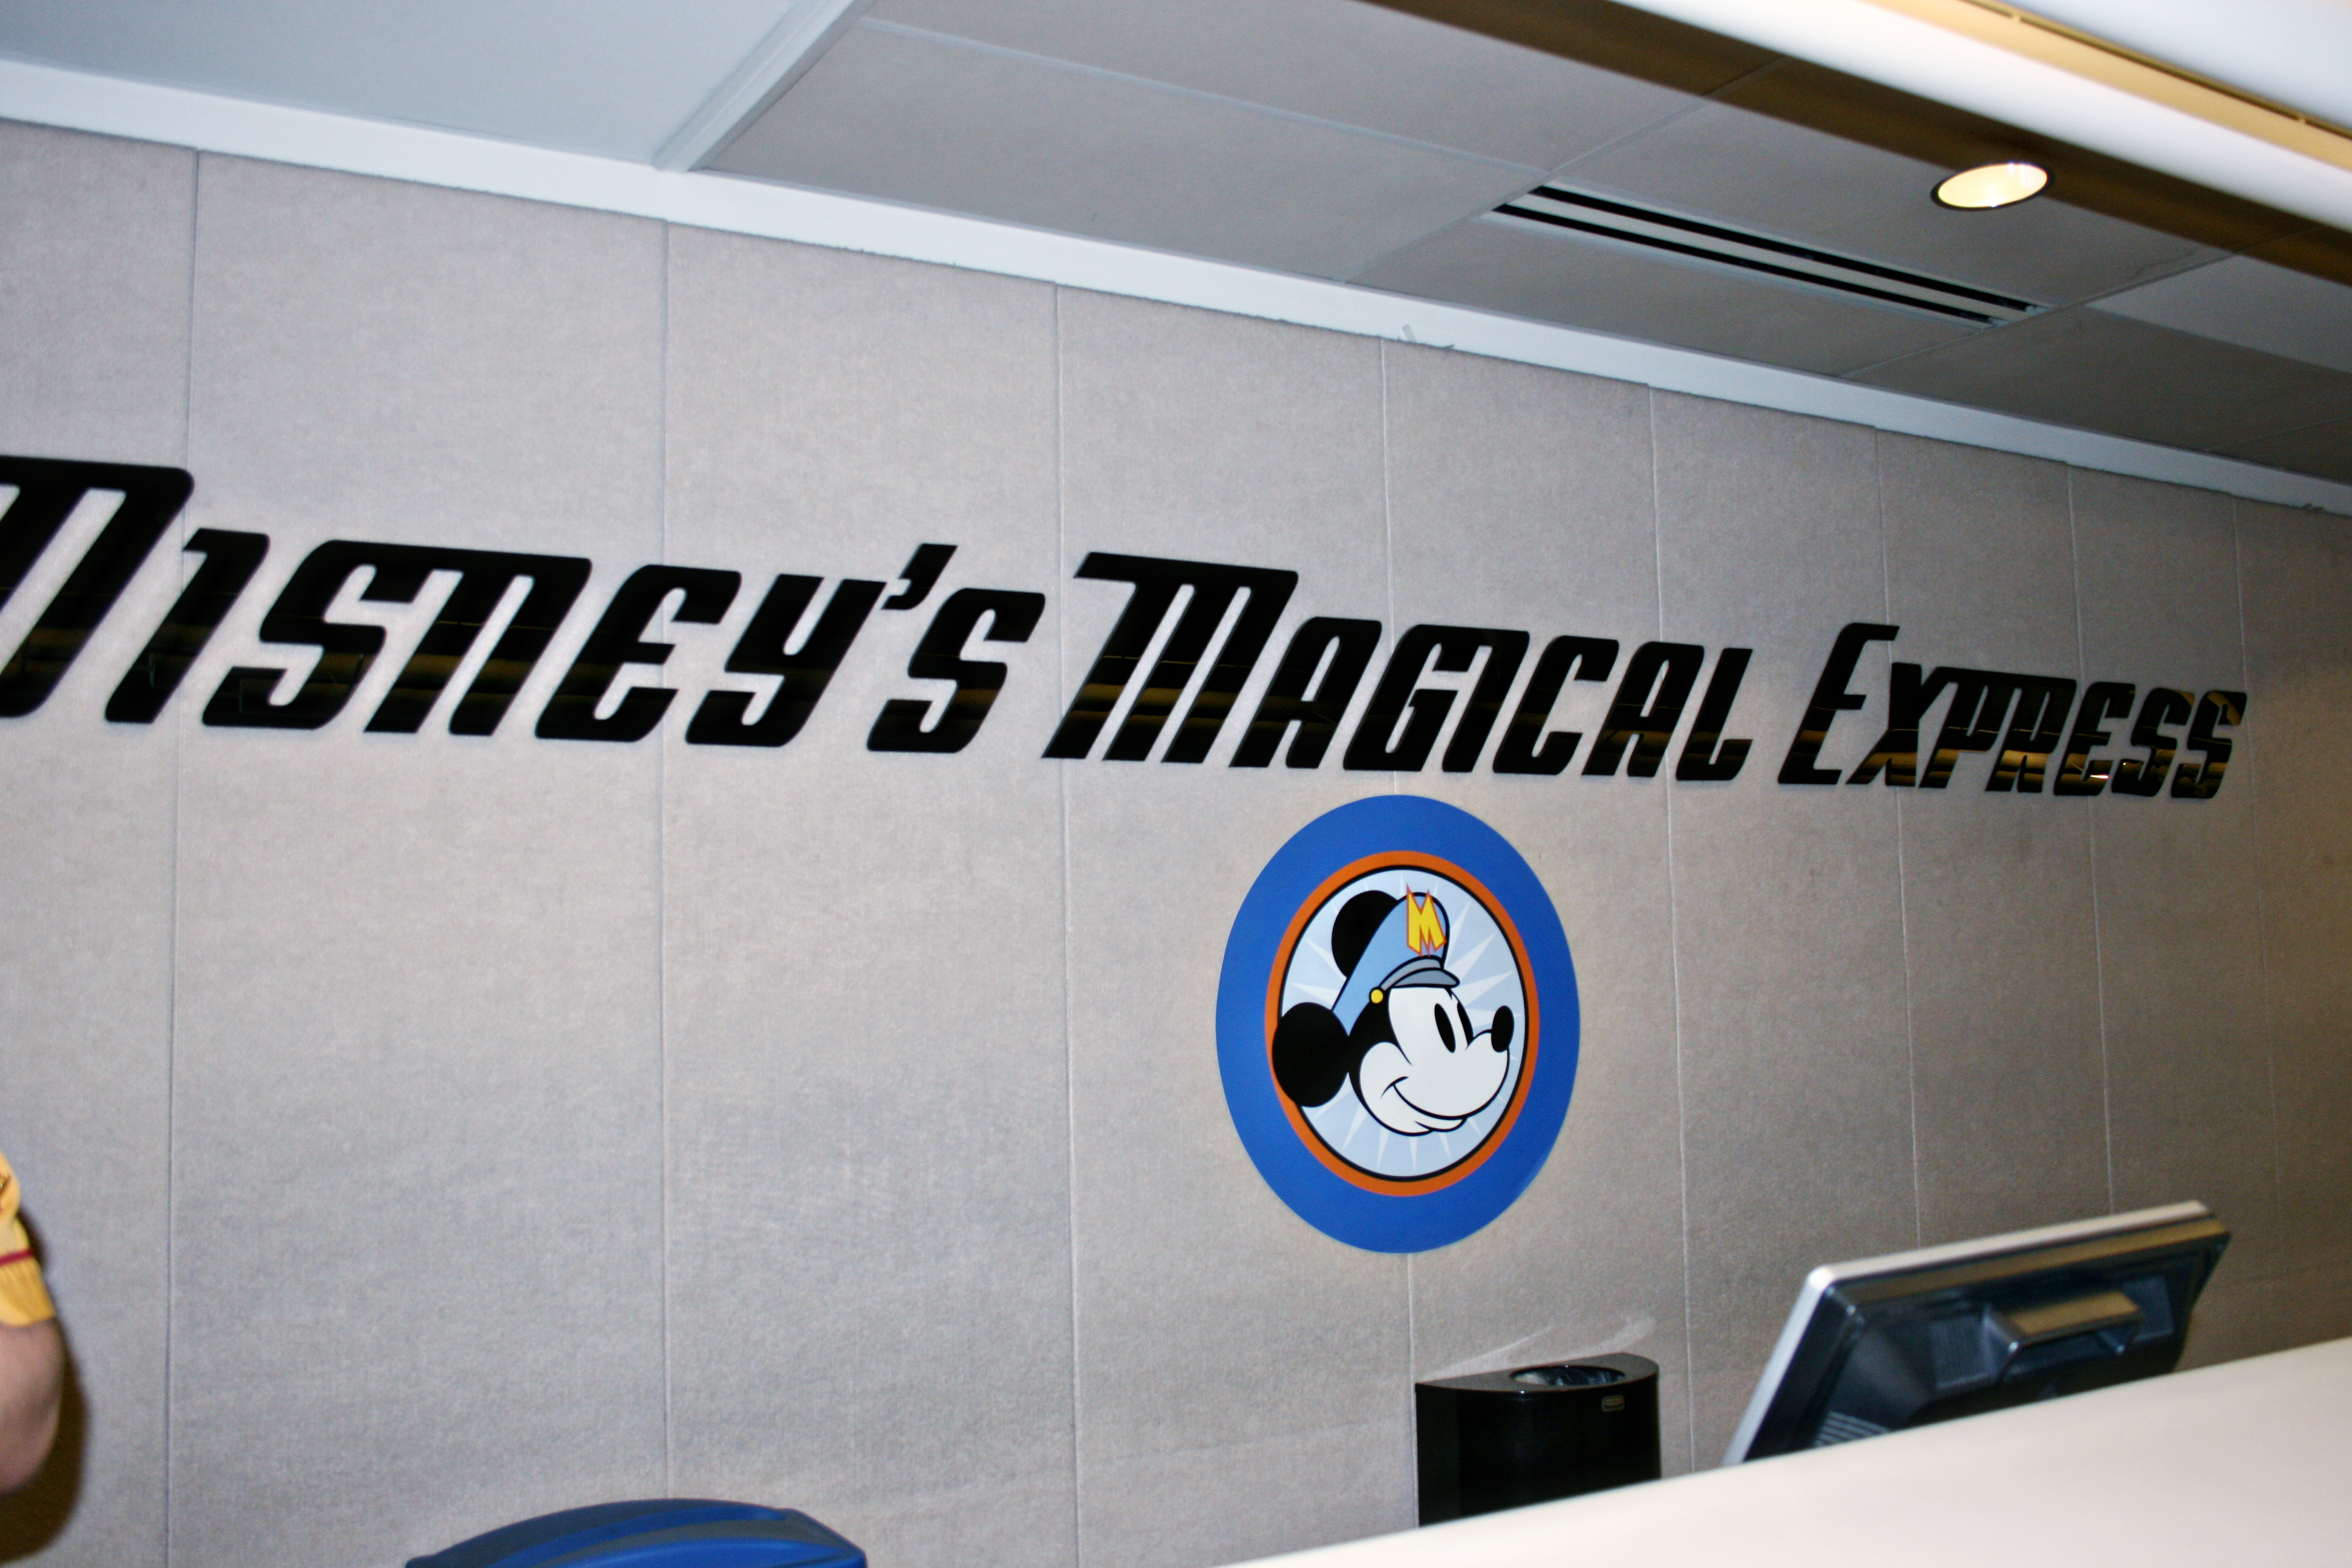 Disney's Magical Express check in desk at the Orlando International Airport